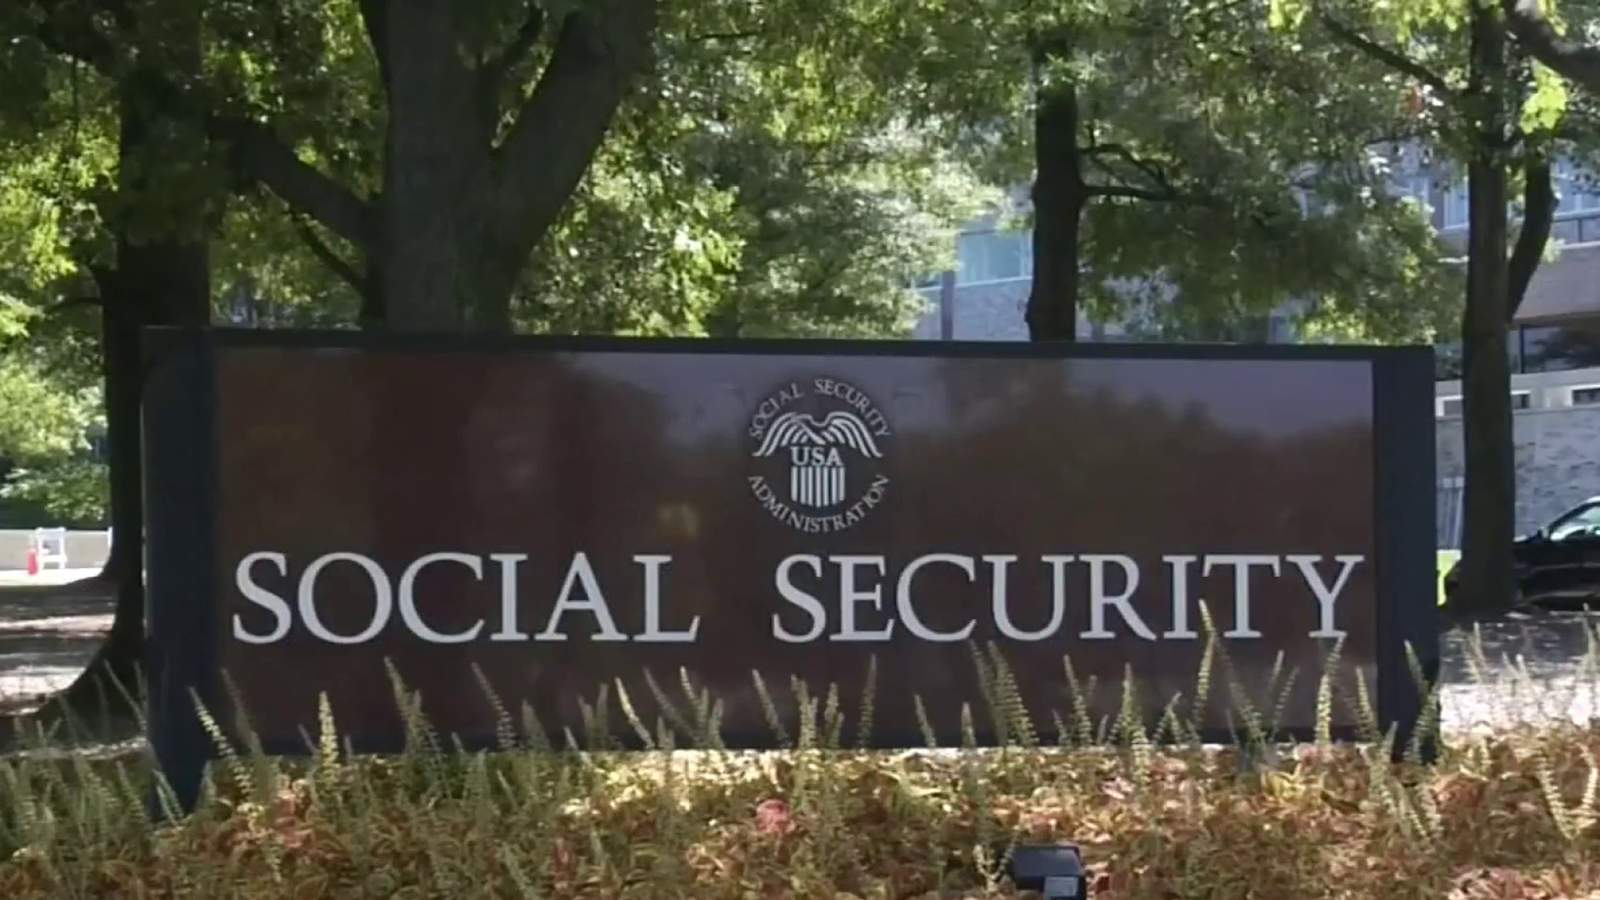 Social security recipients will NOT need to file a tax return to get a stimulus check